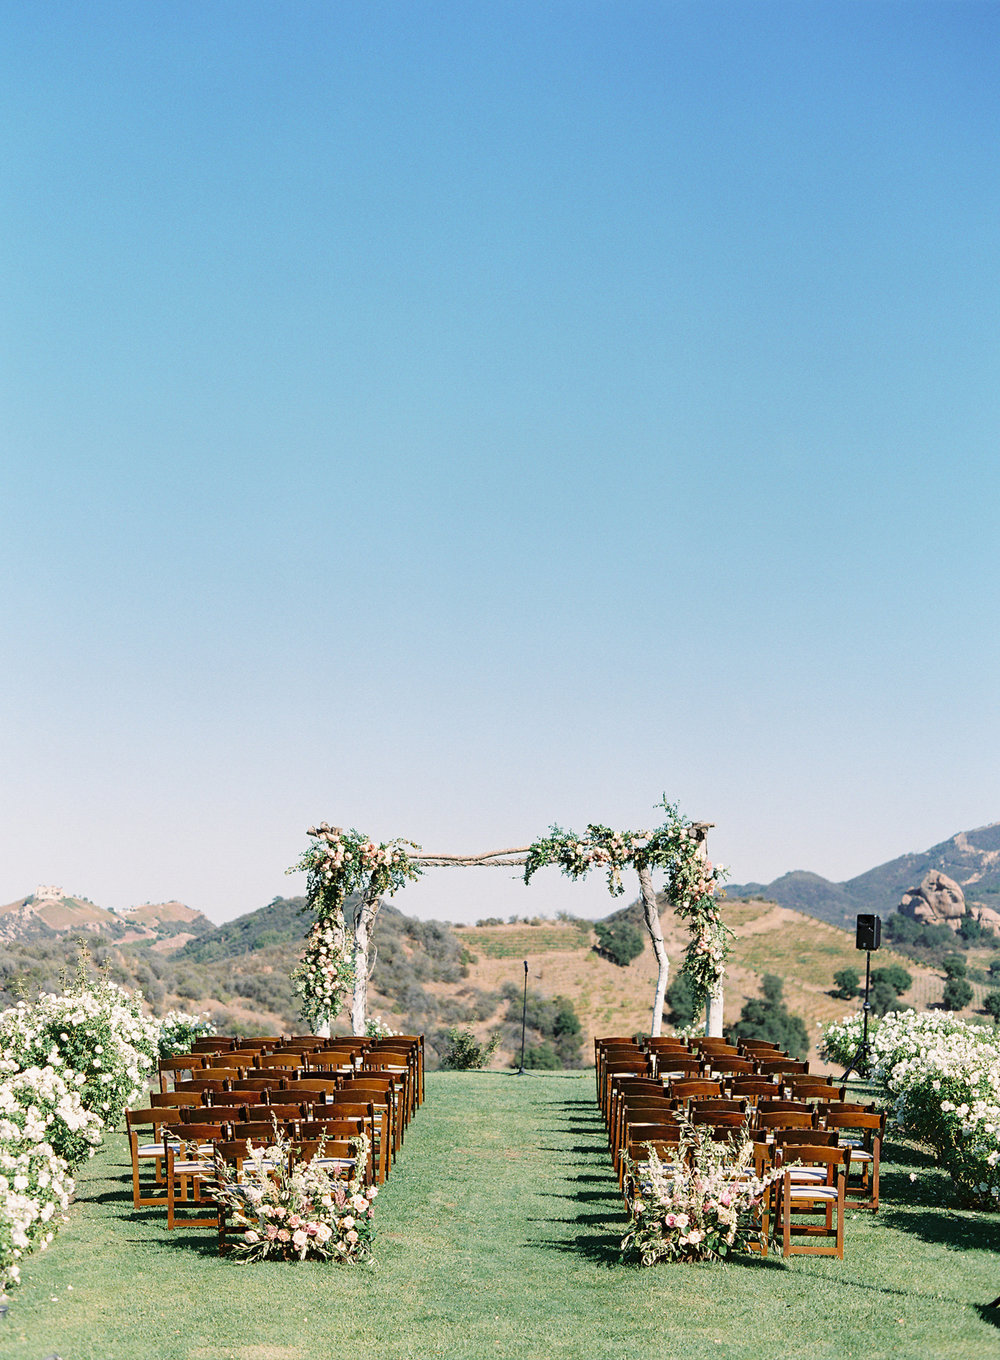 Saddlerock-Ranch-Dome-Film-Wedding-8.jpg